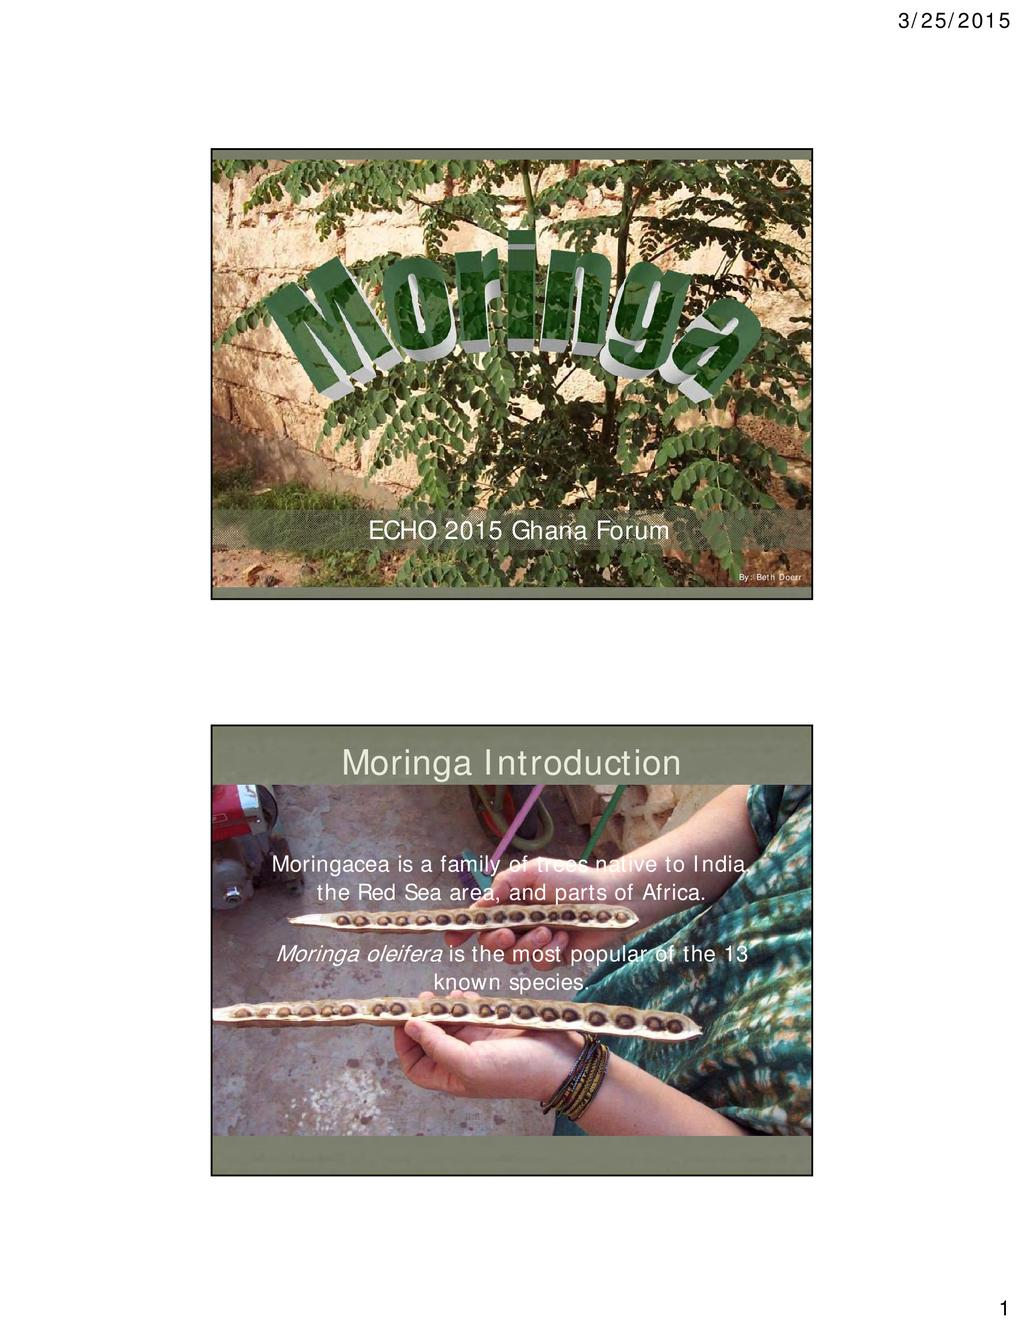 Overview of Moringa